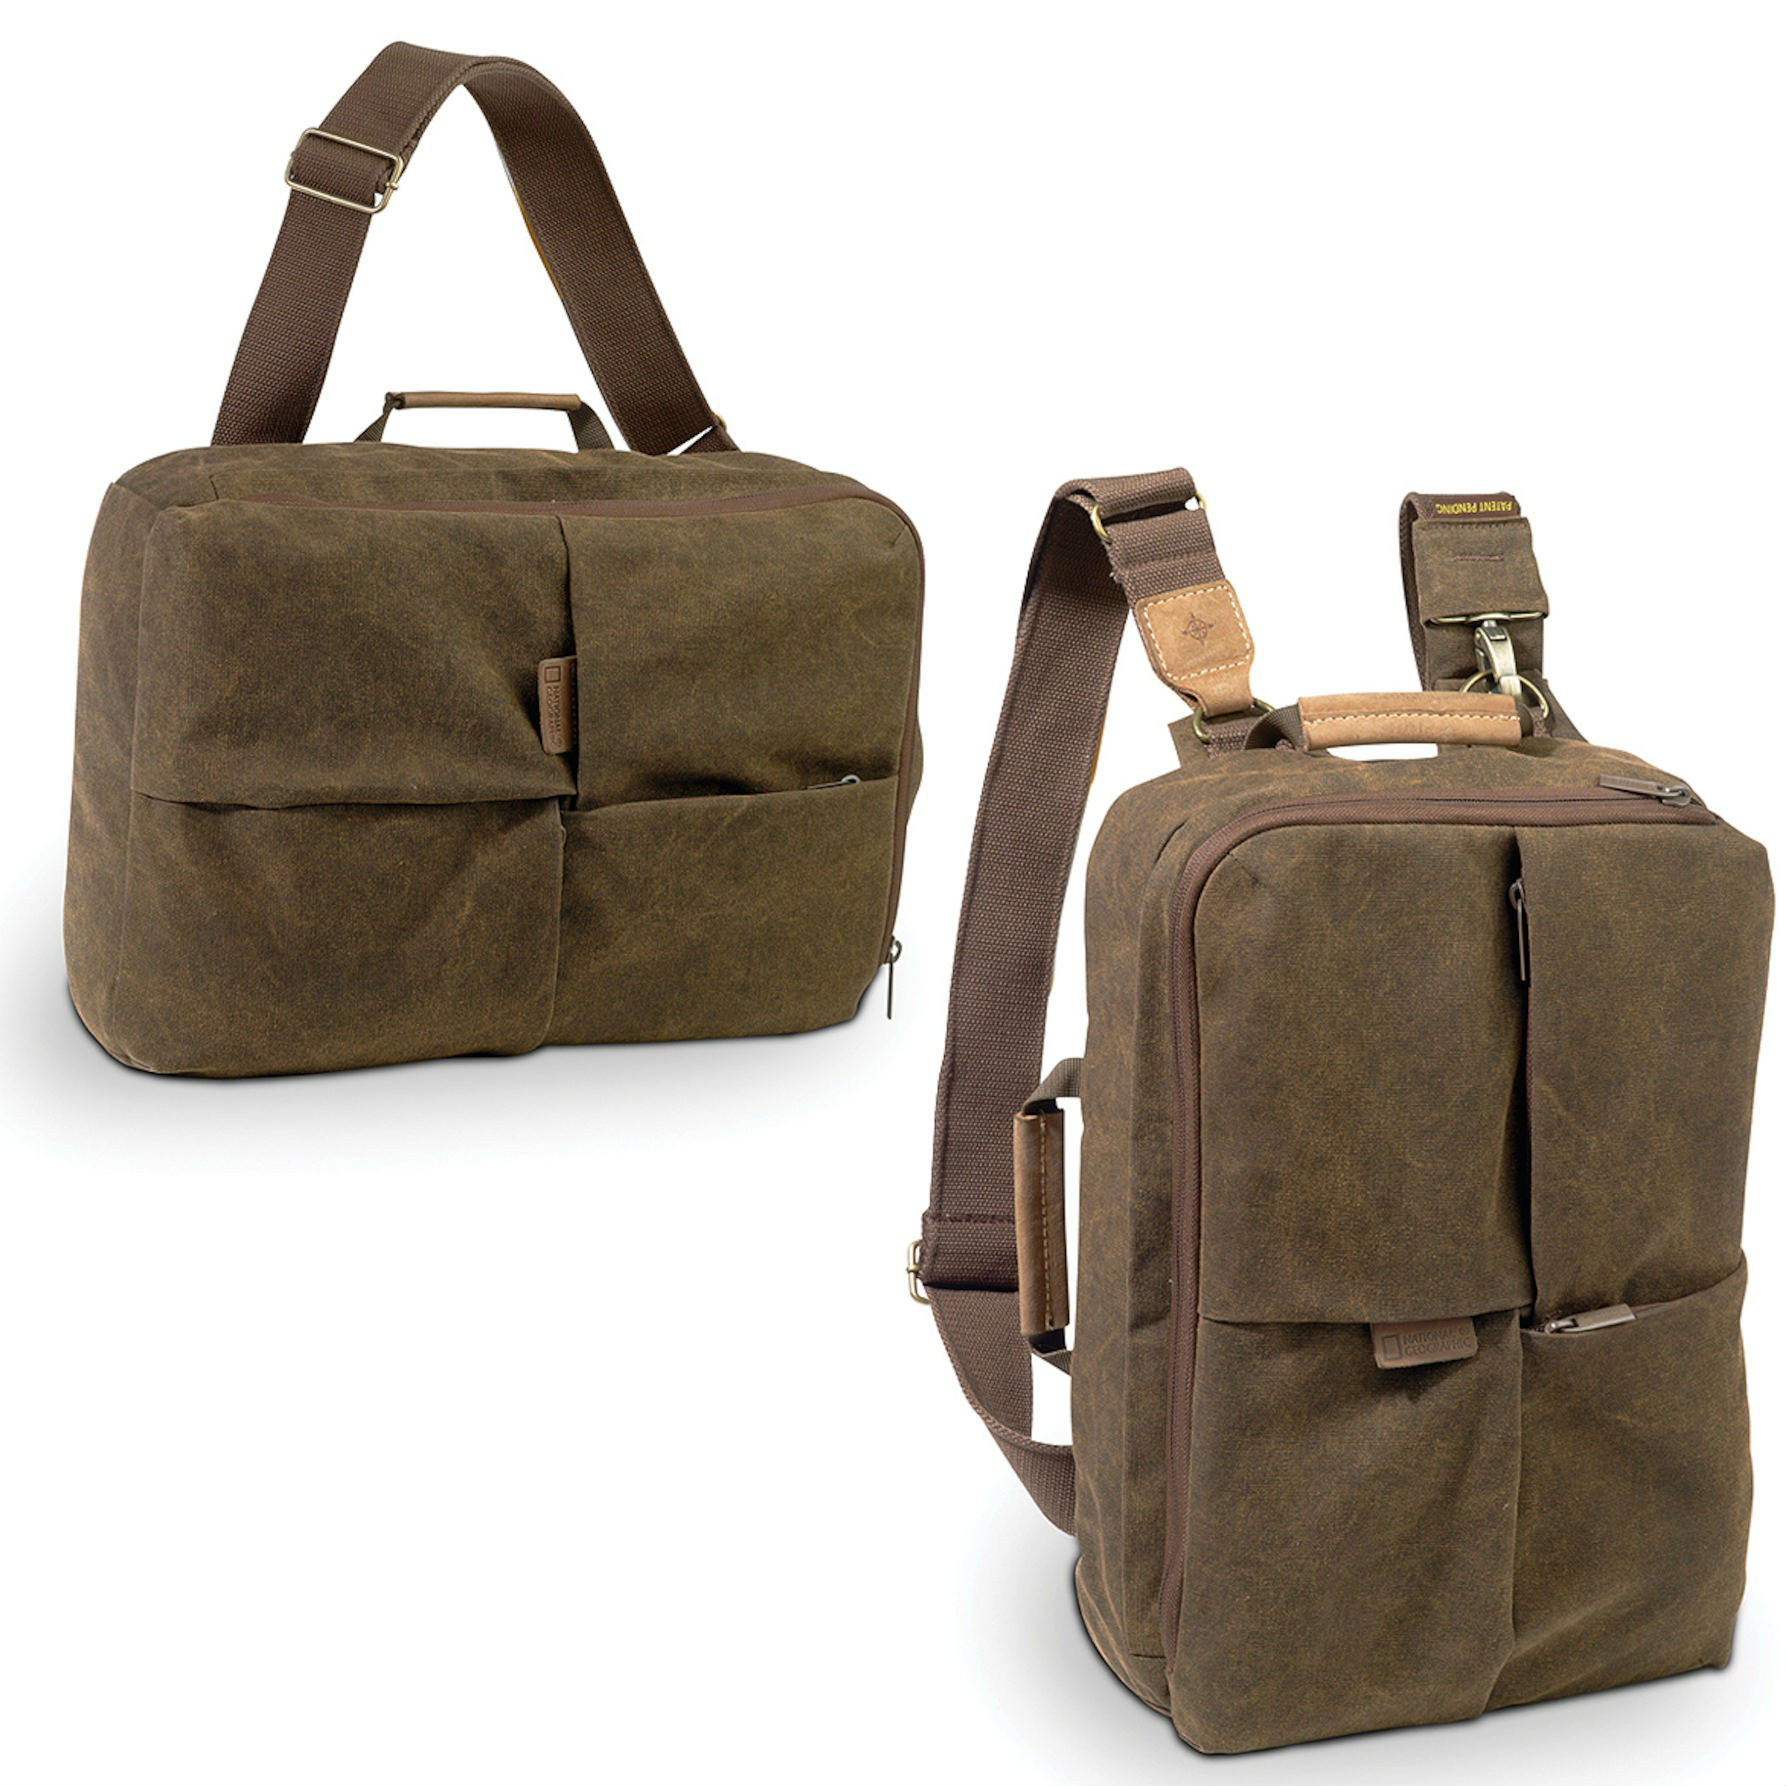 Image of National Geographic Africa Midi Satchel - NG A2540